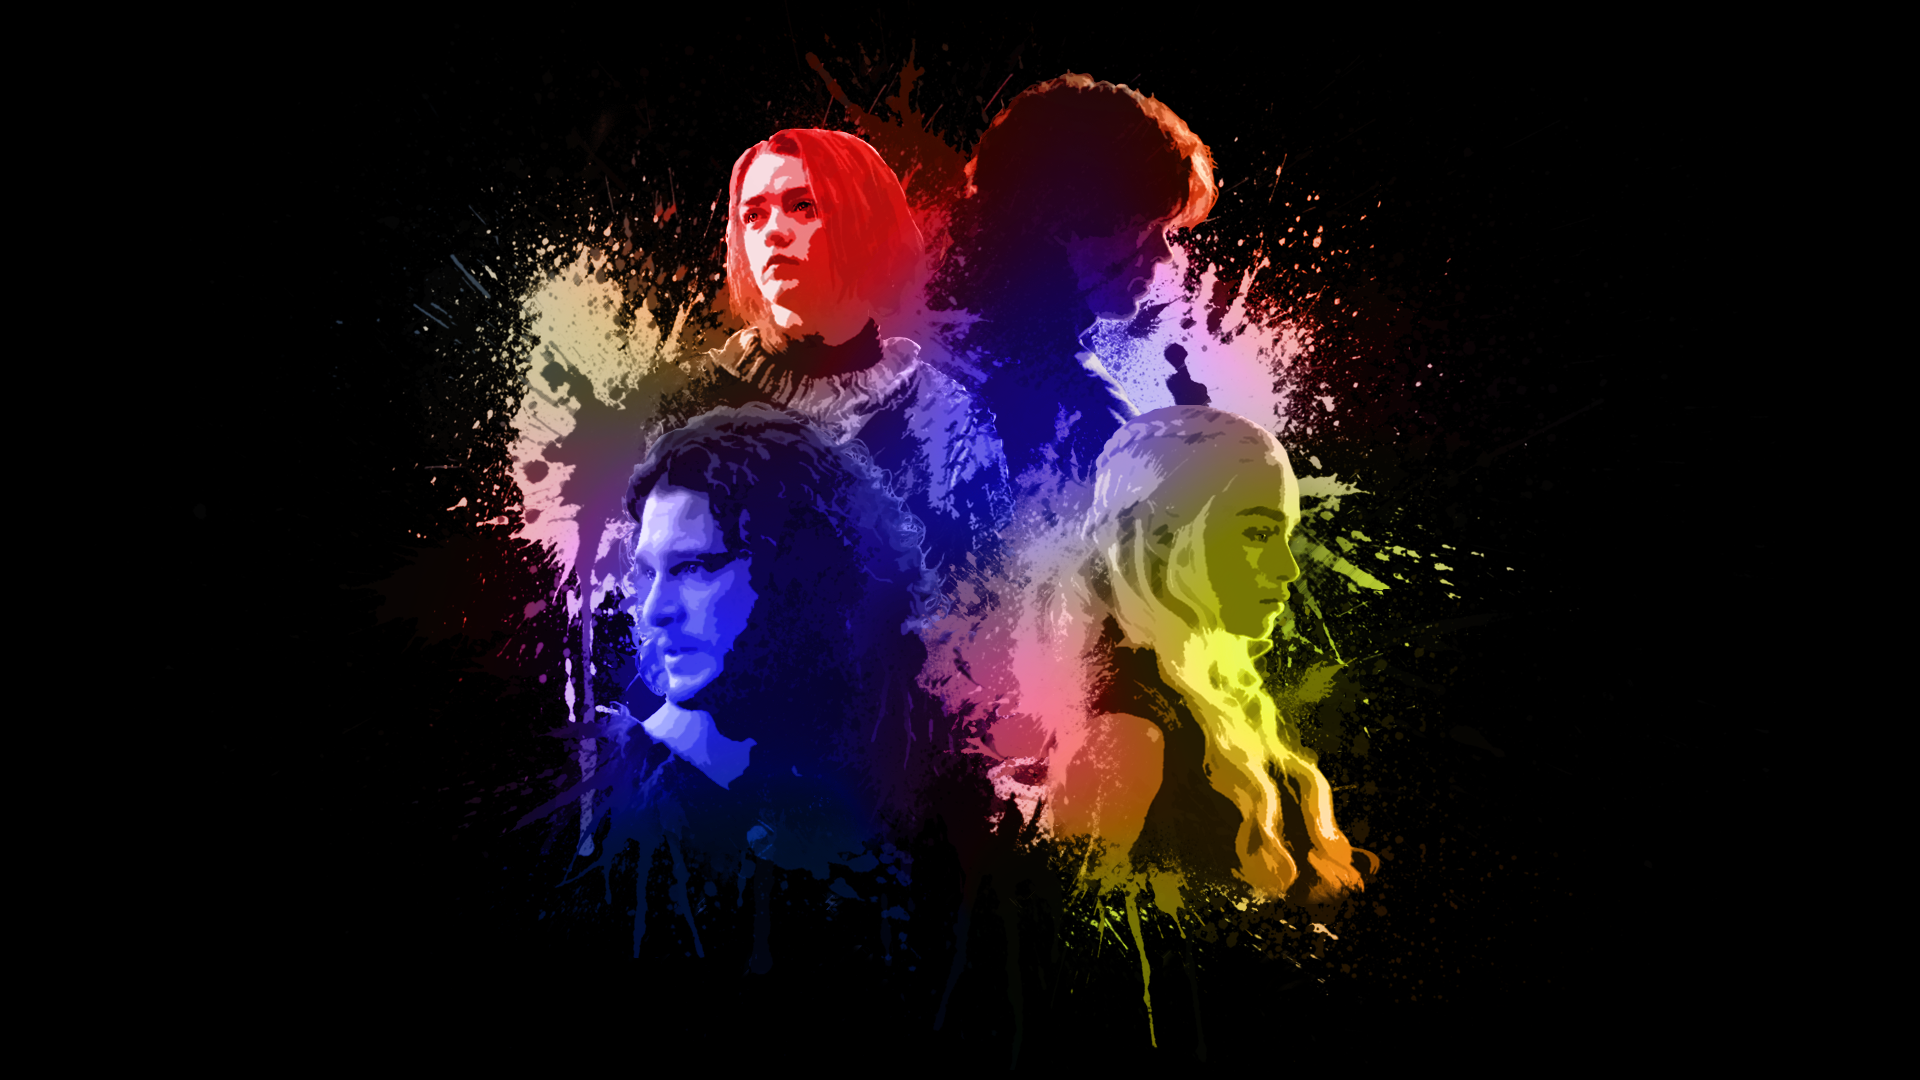 Game Of Thrones Wallpaper No Logo By Rocklou On Deviantart